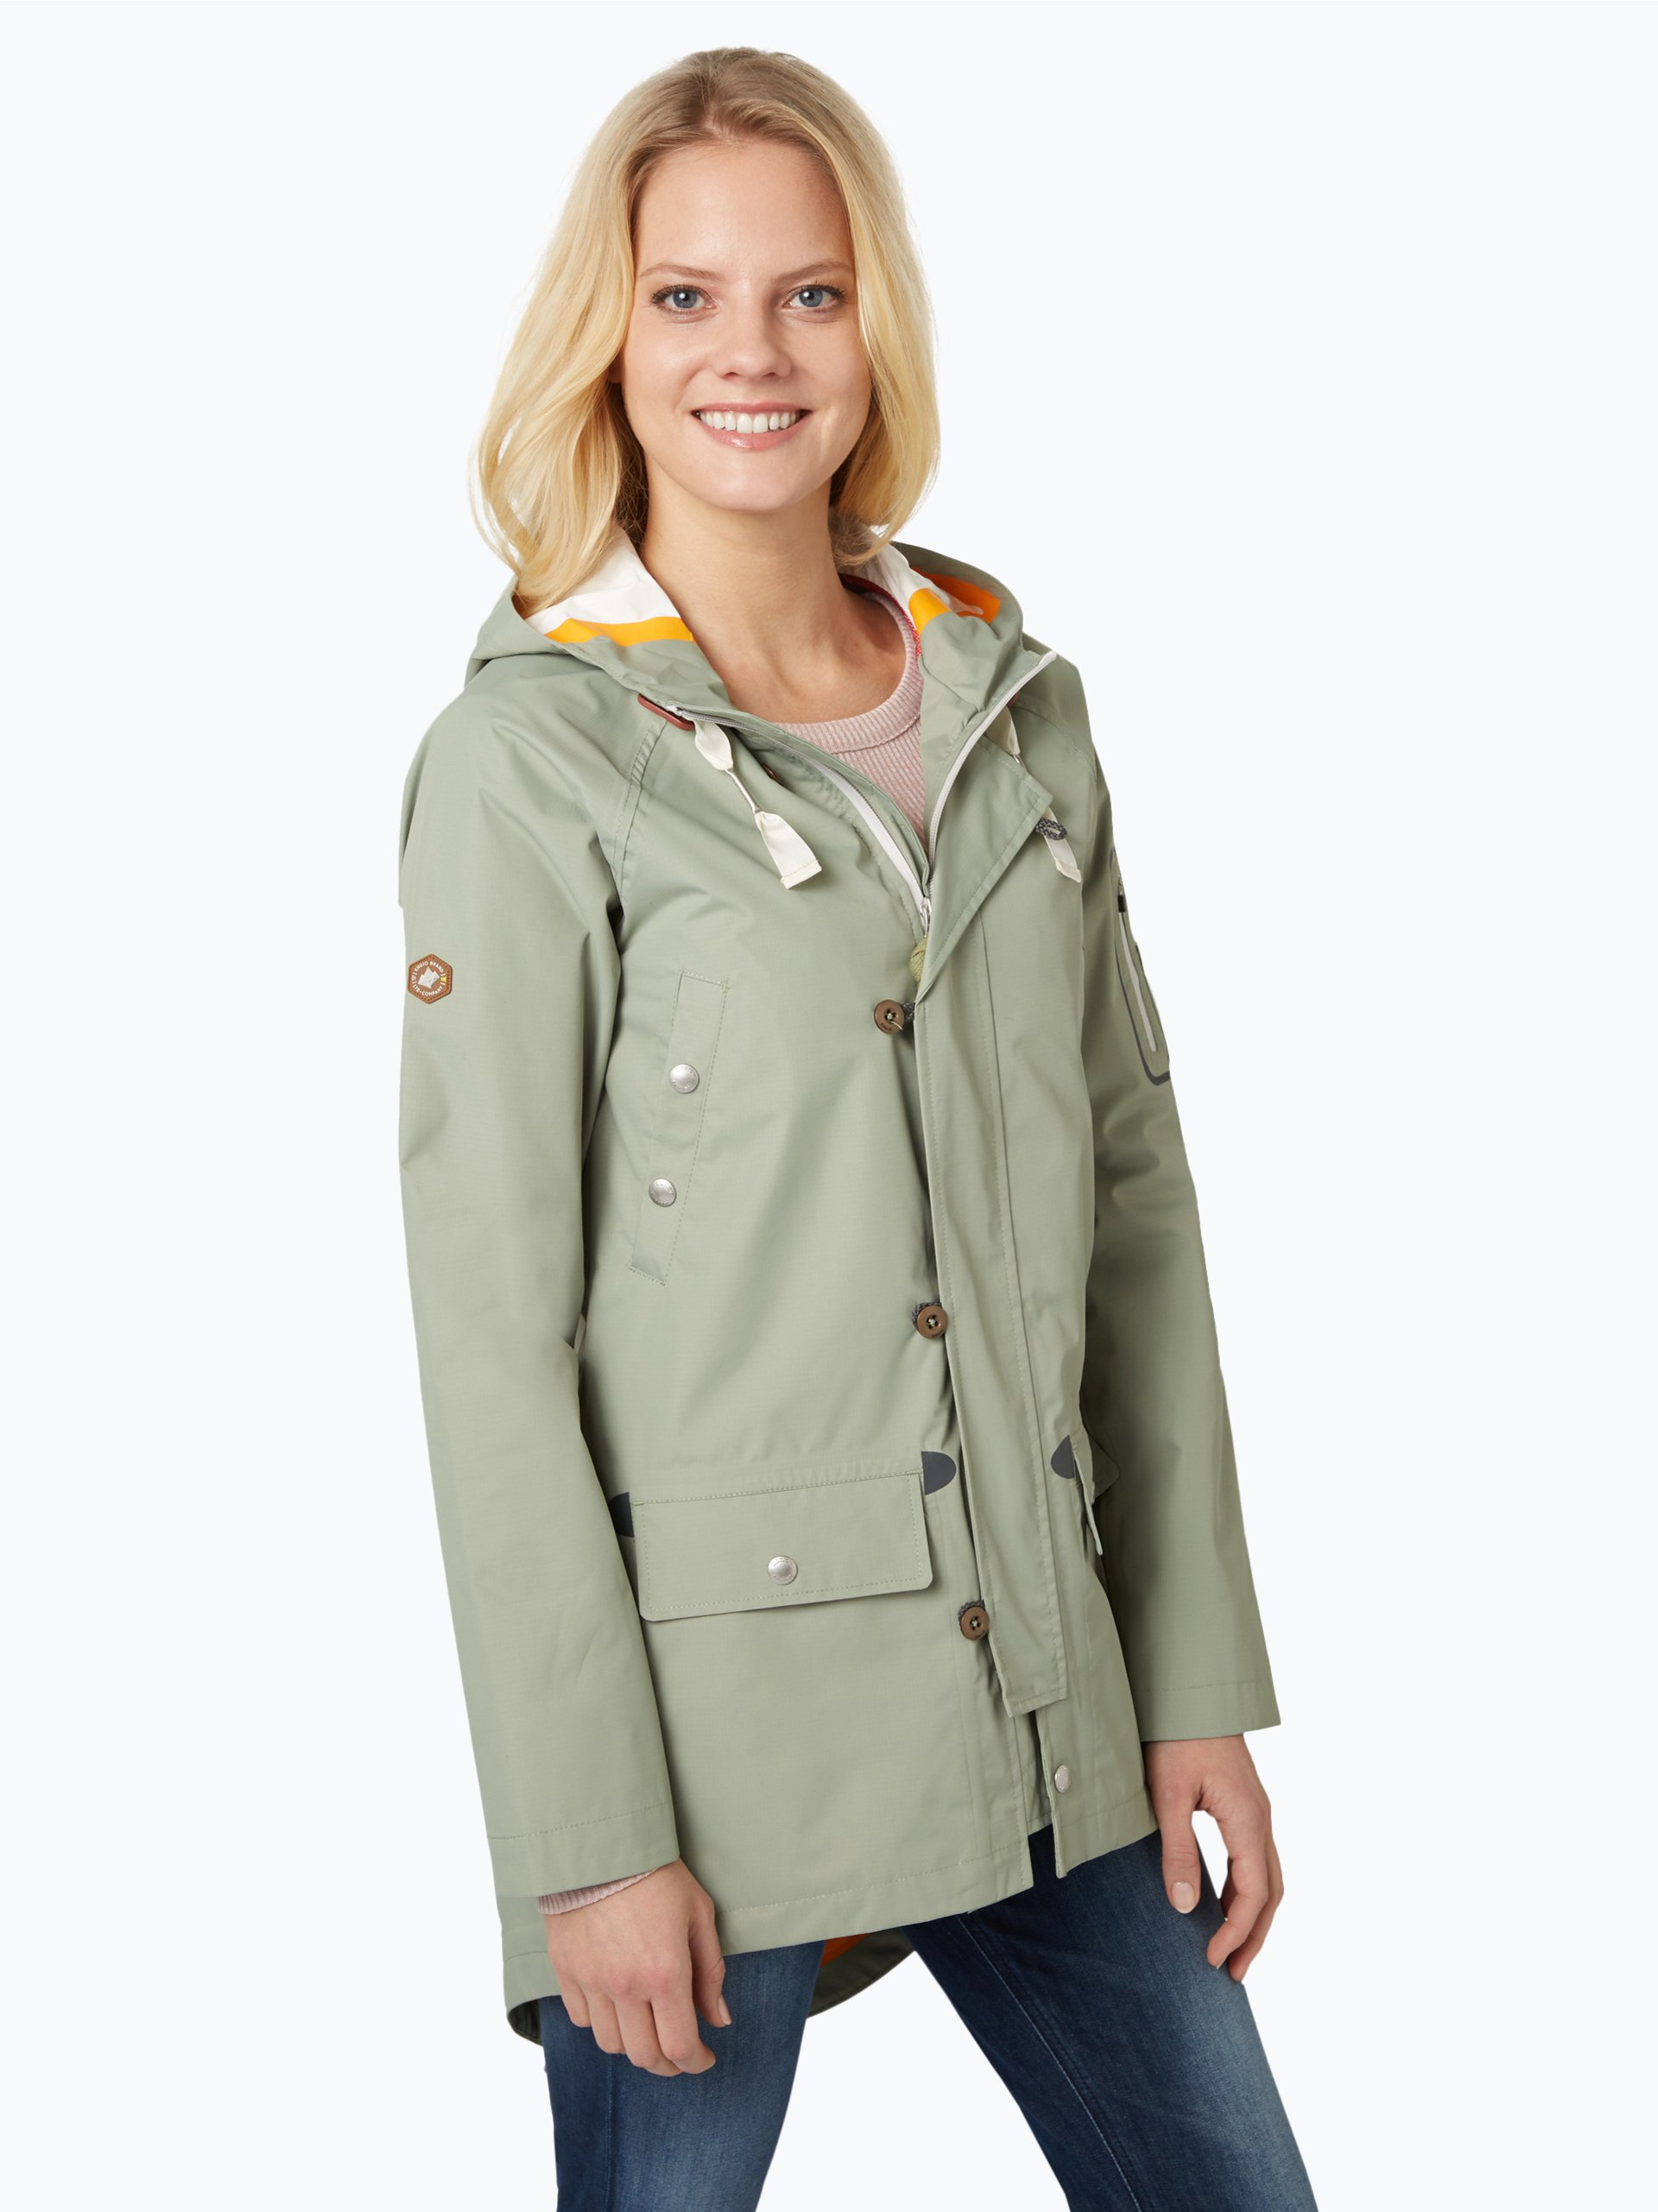 Khujo damen winterjacke chantal india mix olive